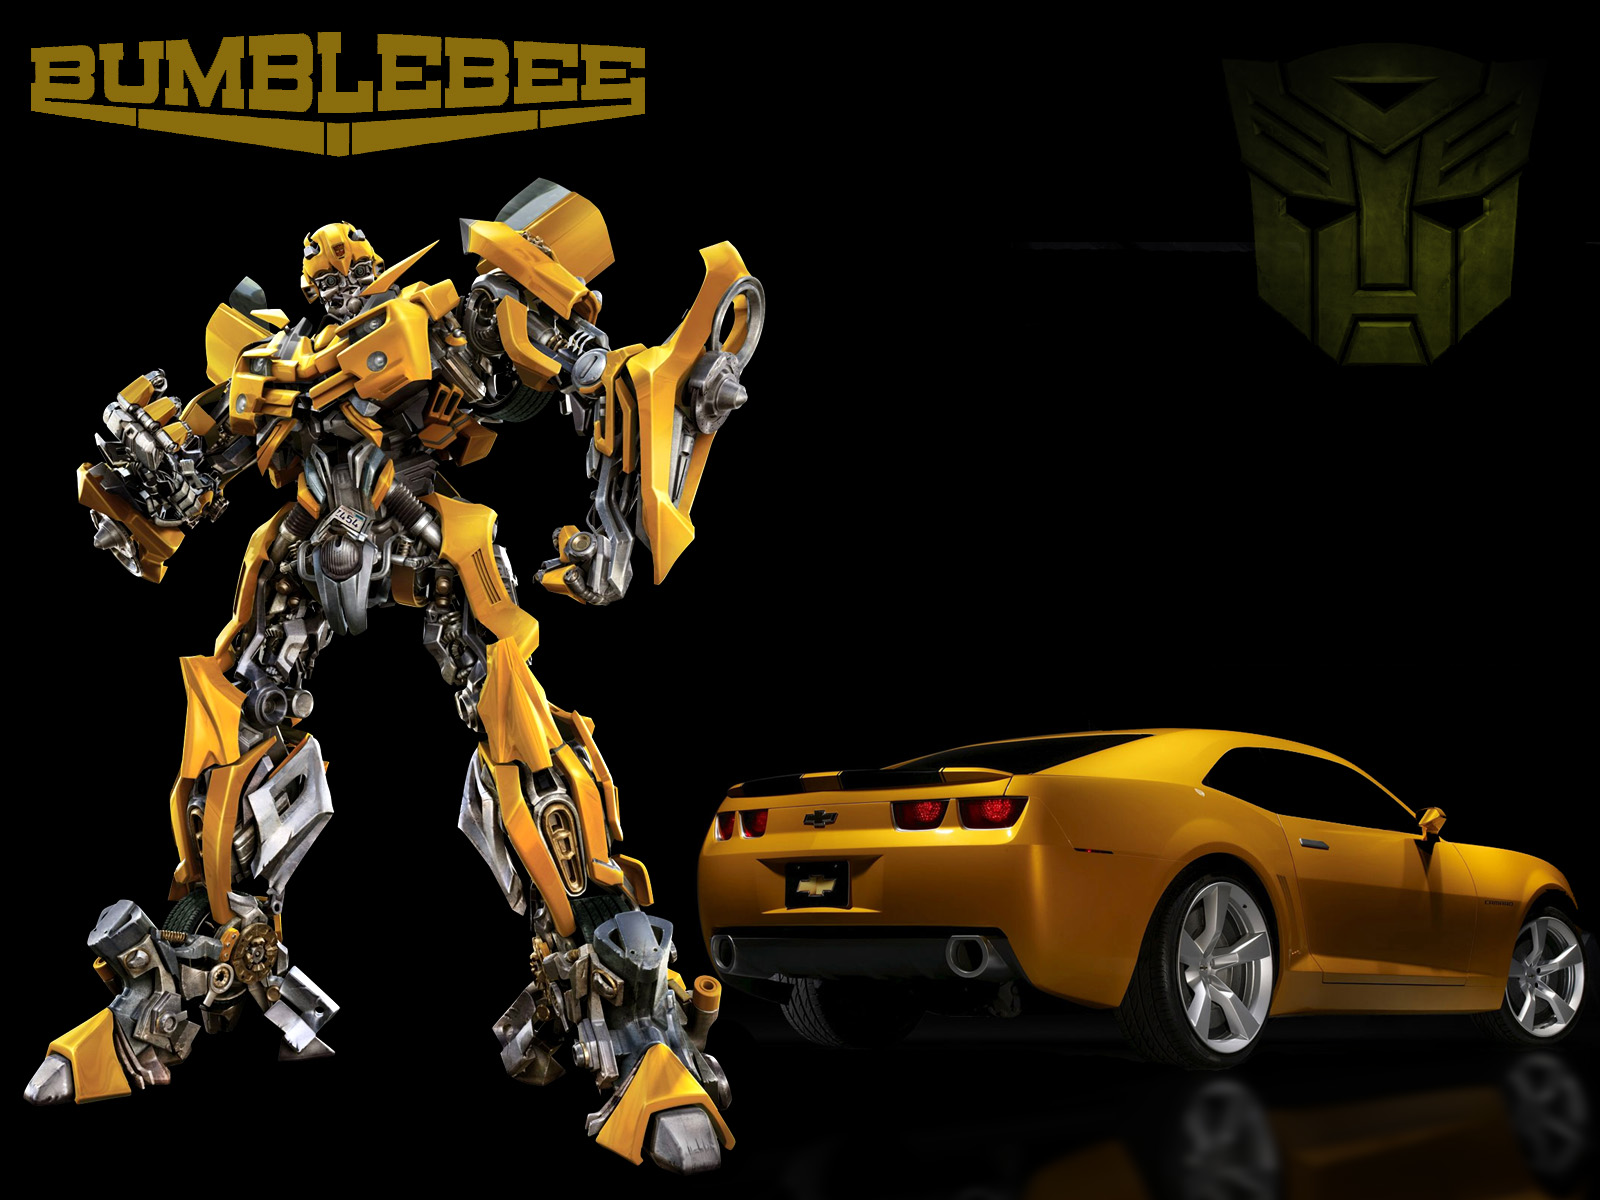 transformers 4 movie : teaser trailer